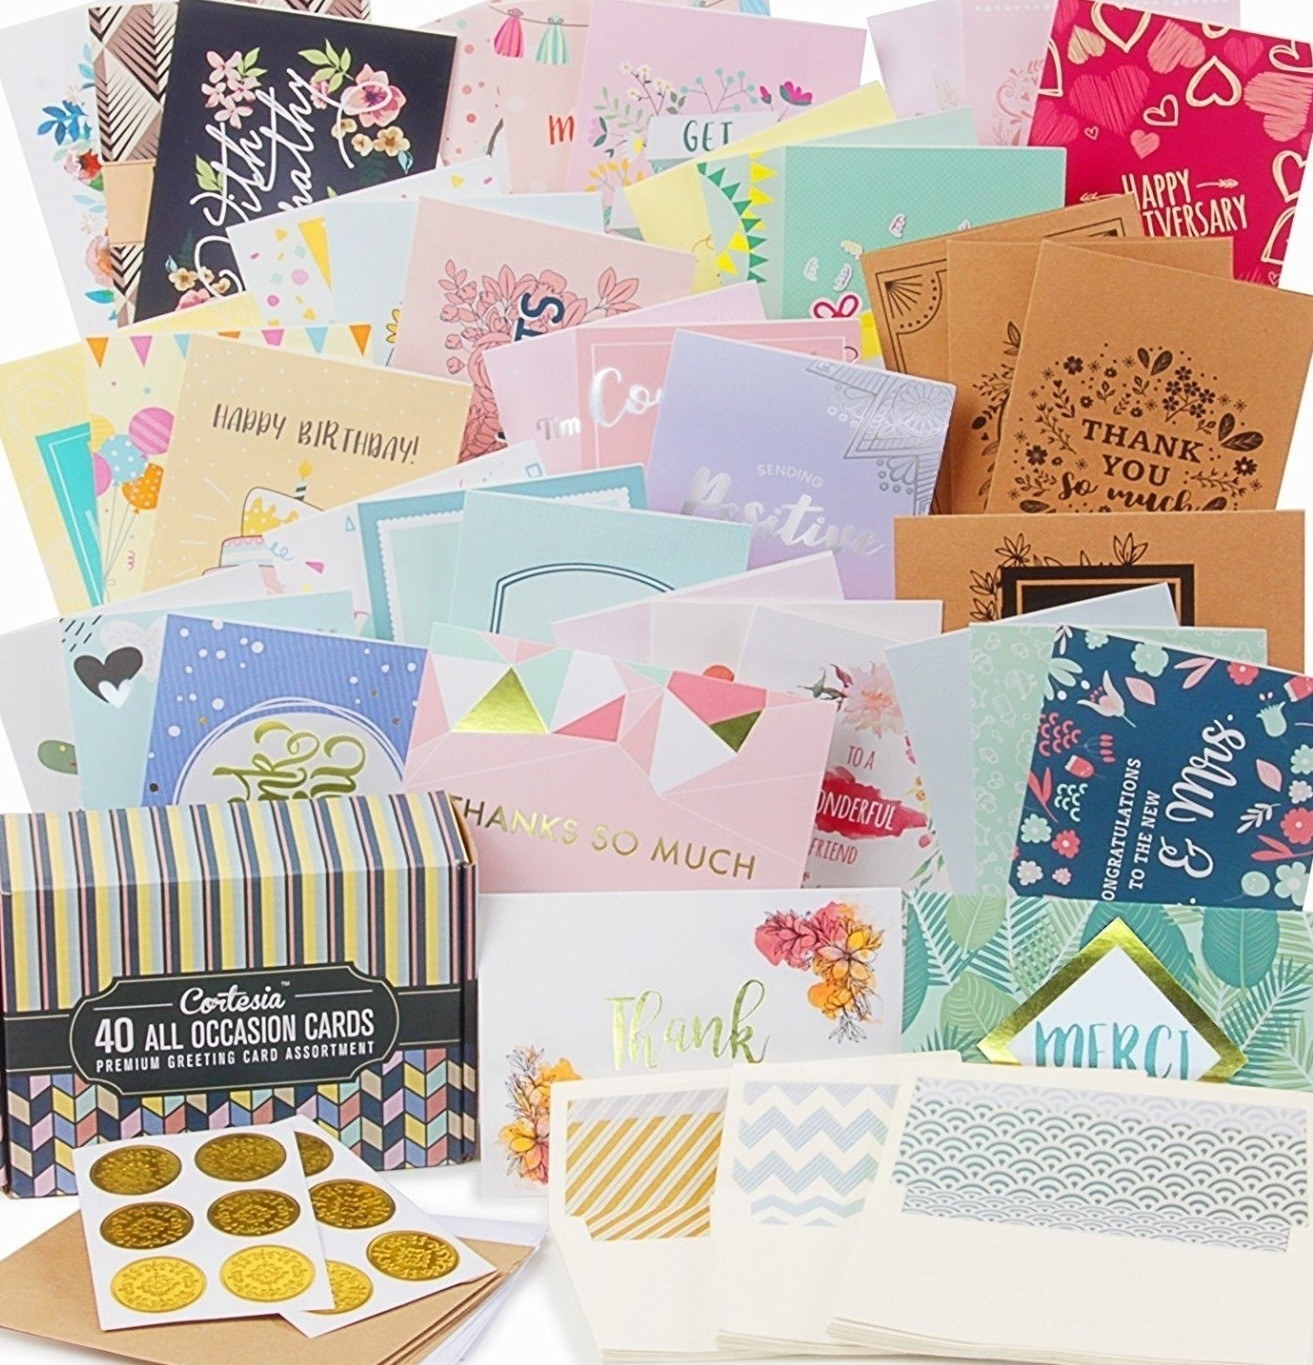 The collection of birthday cards spread out showing the different variety